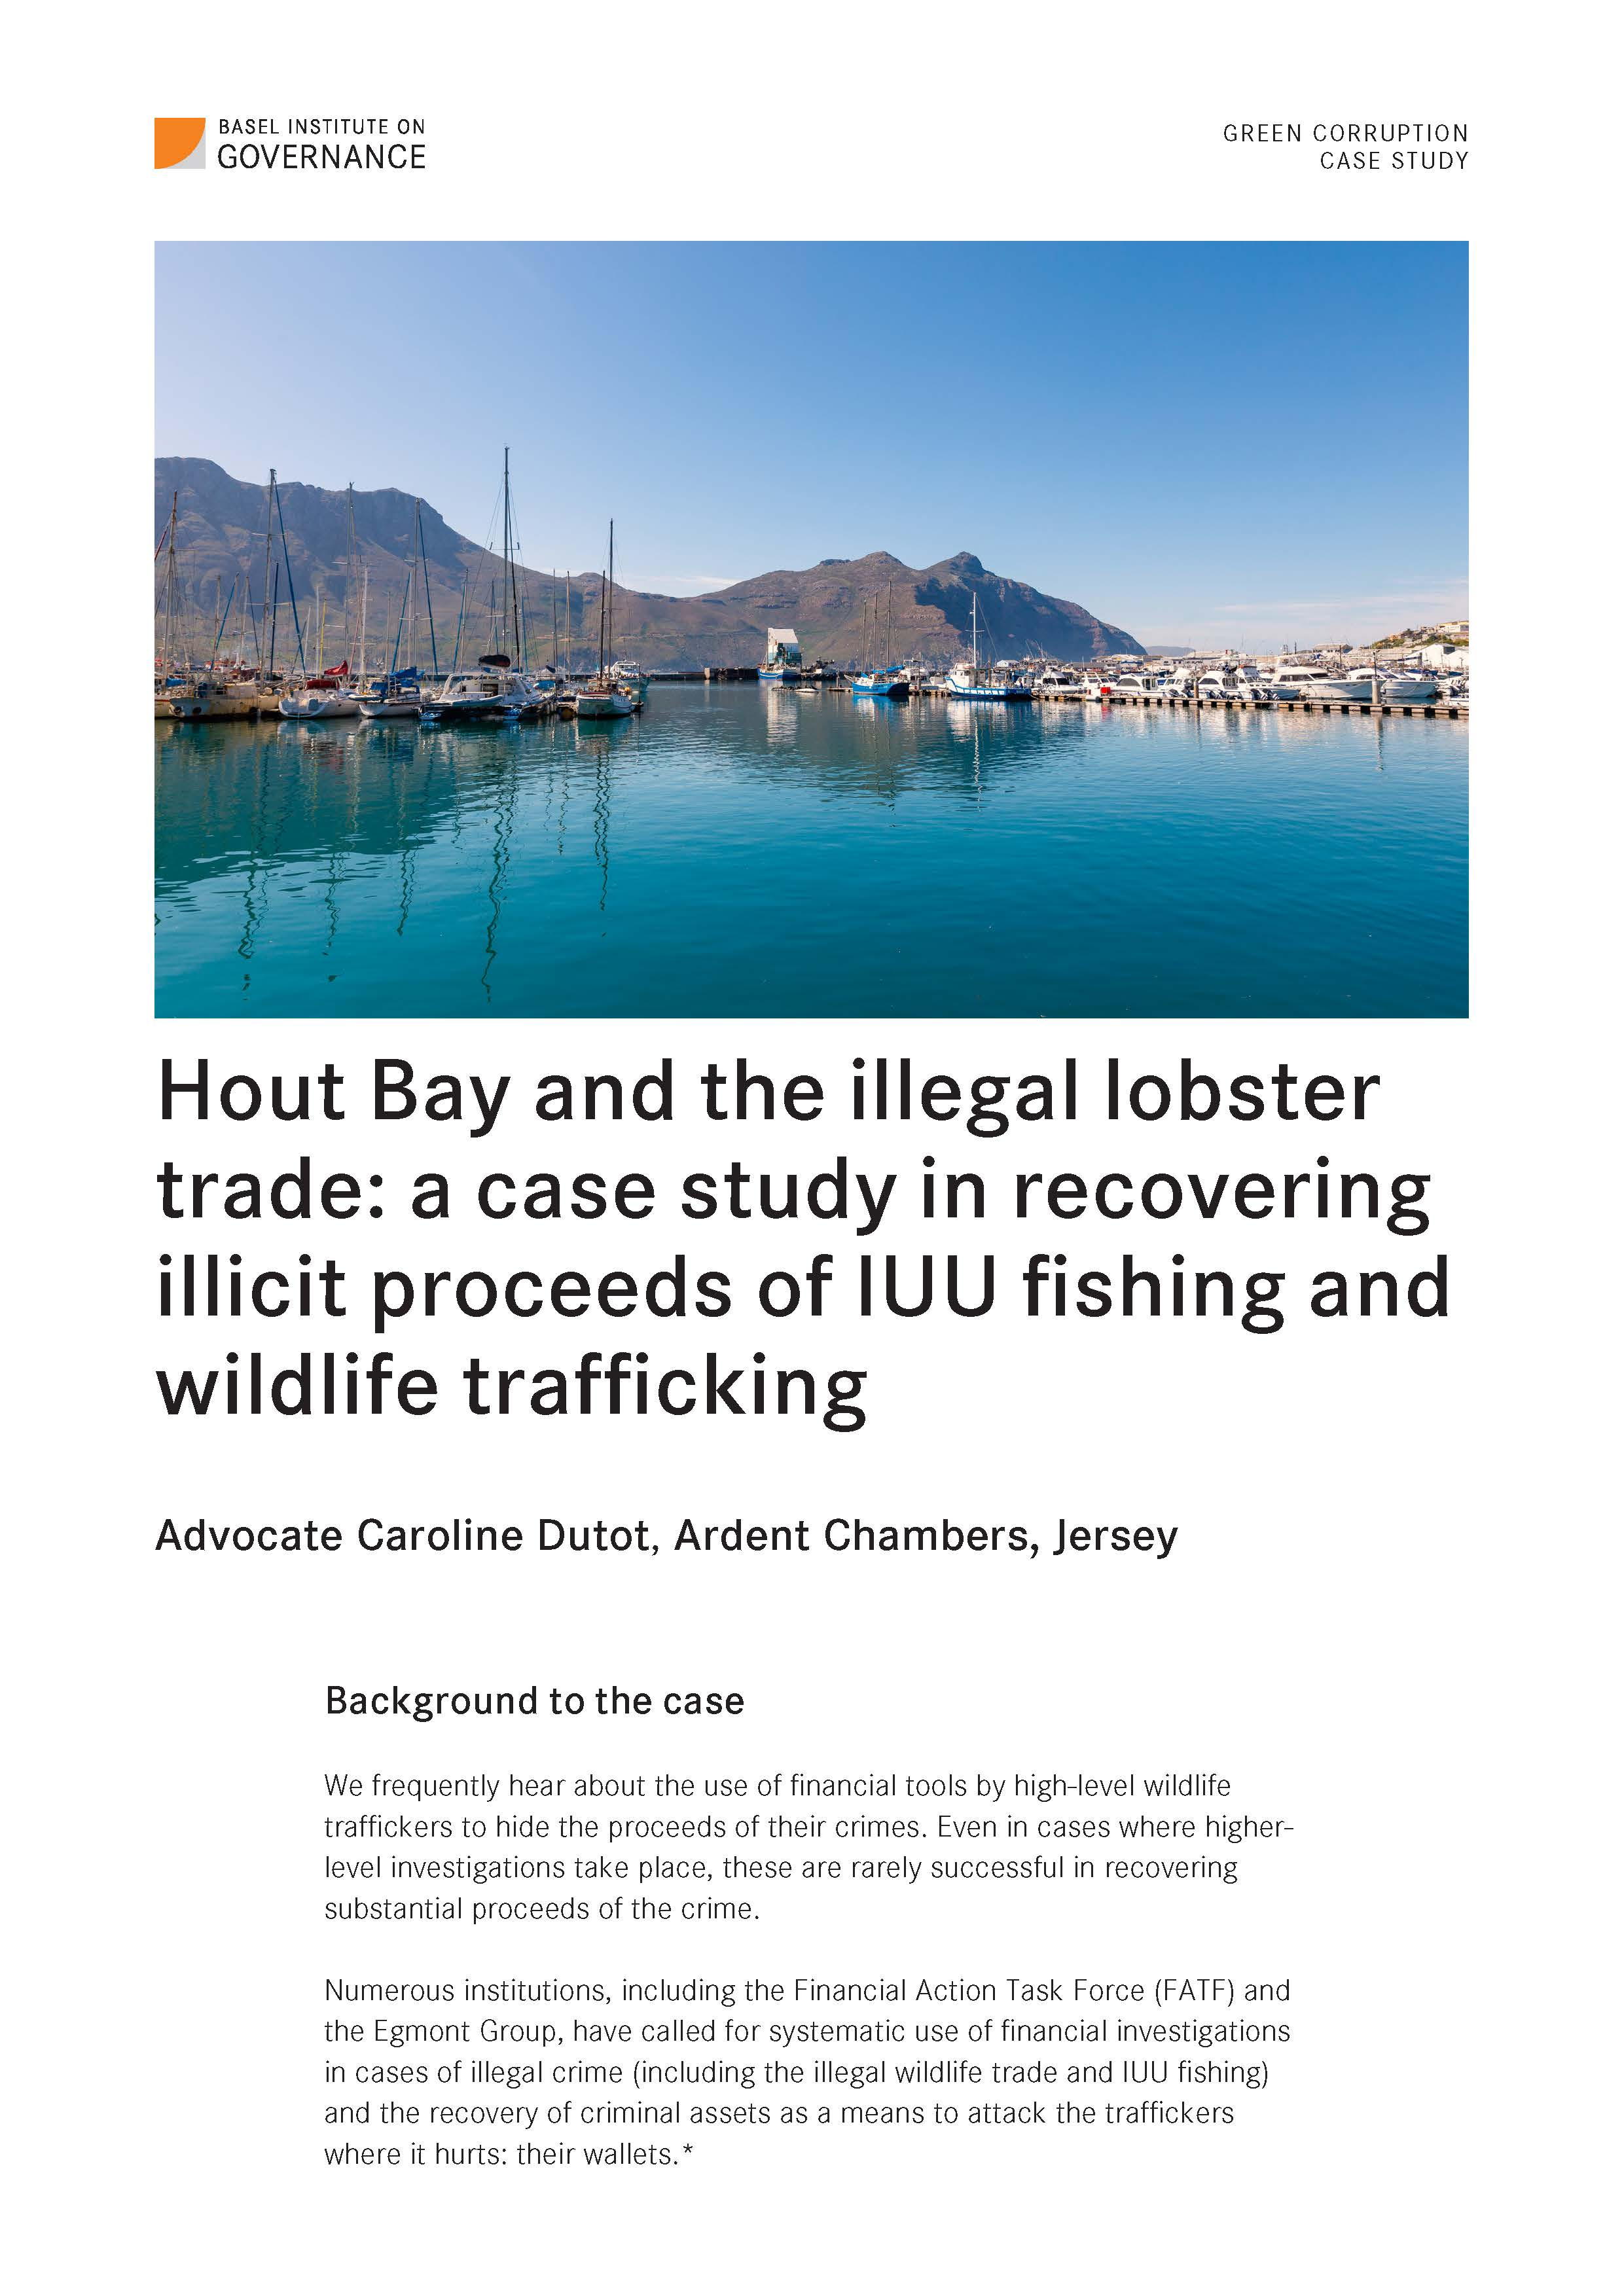 Cover page of Hout Bay Fishing Industries case study